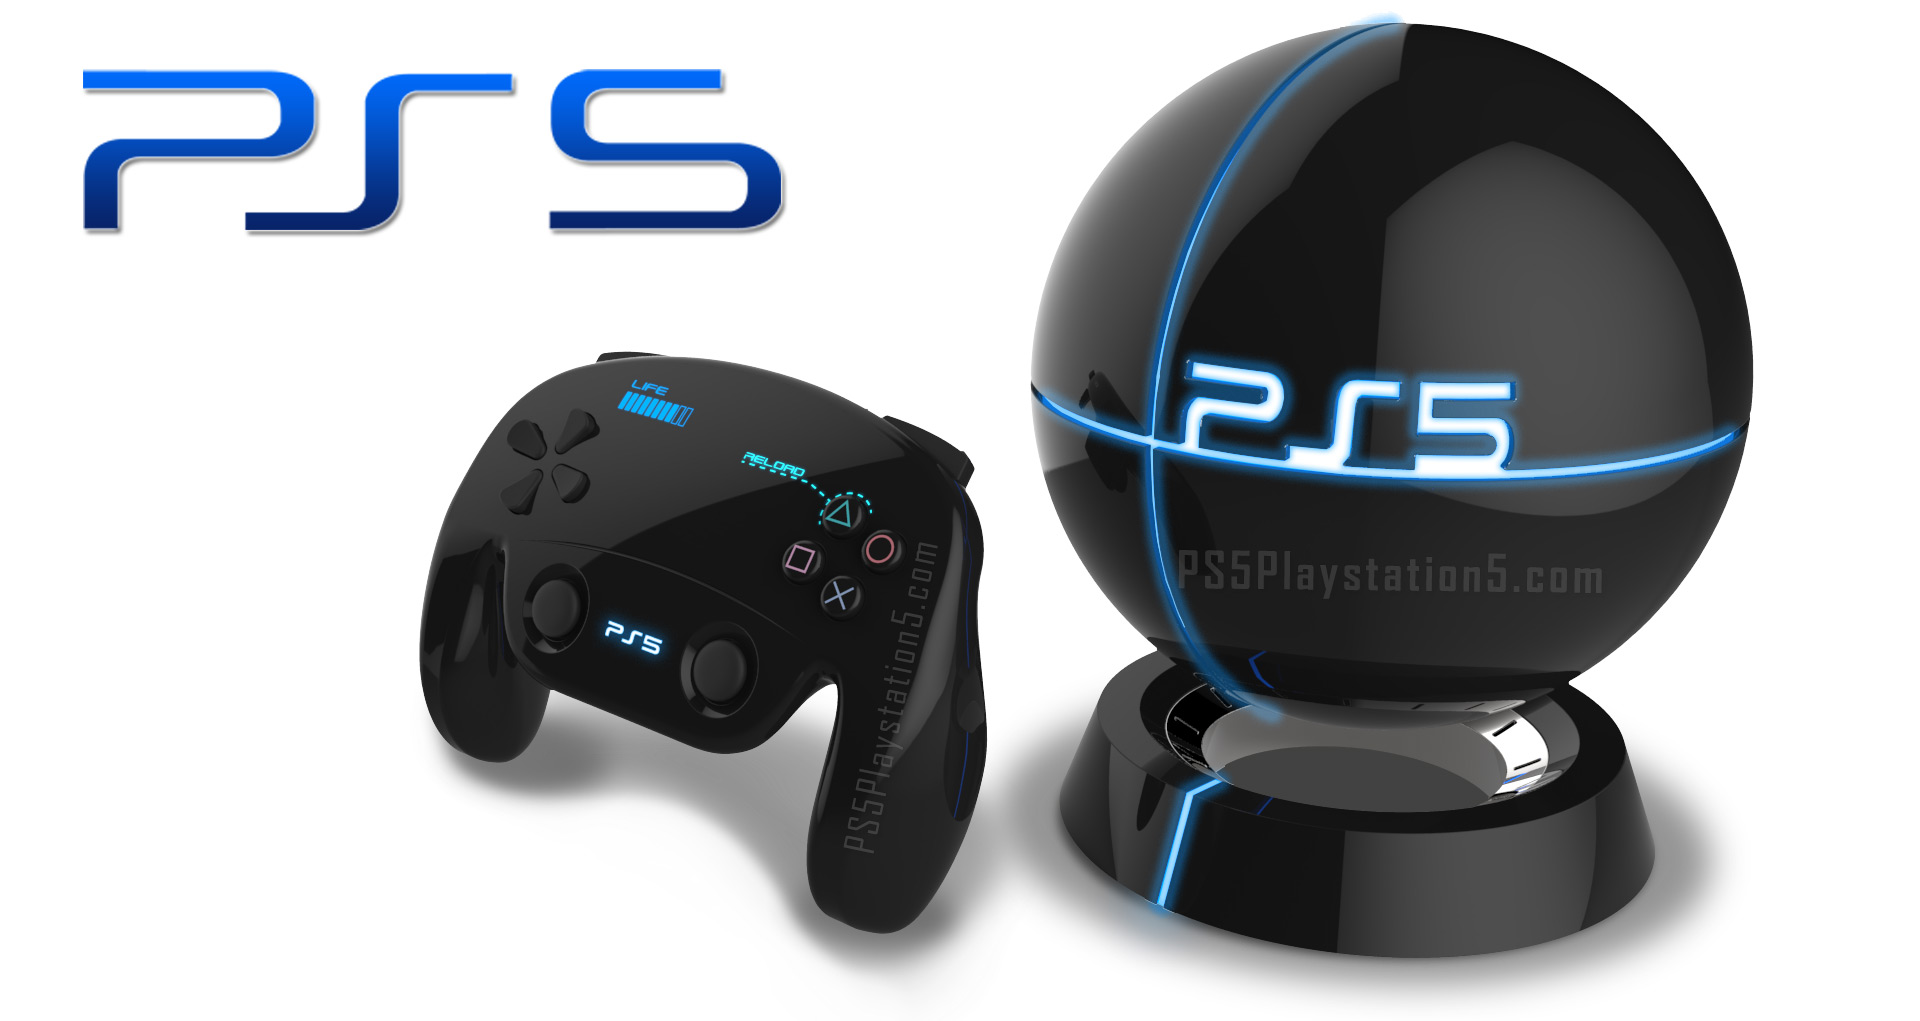 Levitating Ps5 Console With Touch Screen Dualshock 5 Controller Ps5